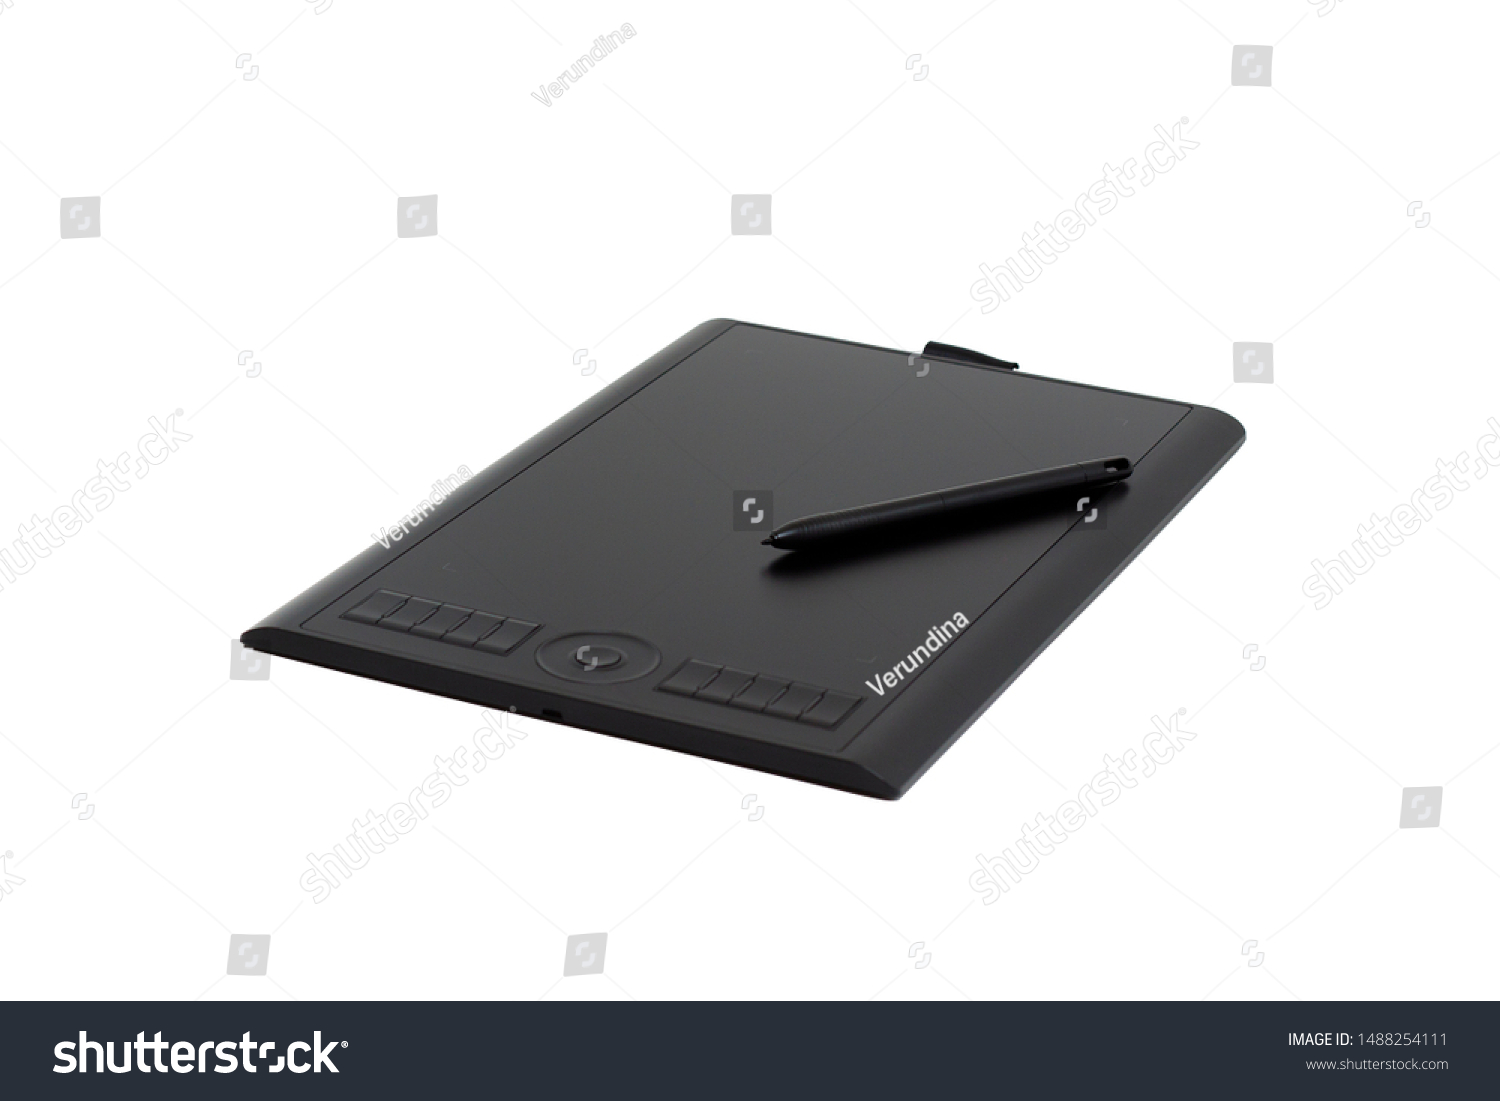 Black graphic tablet and pen for illustrators and designers isolated #1488254111